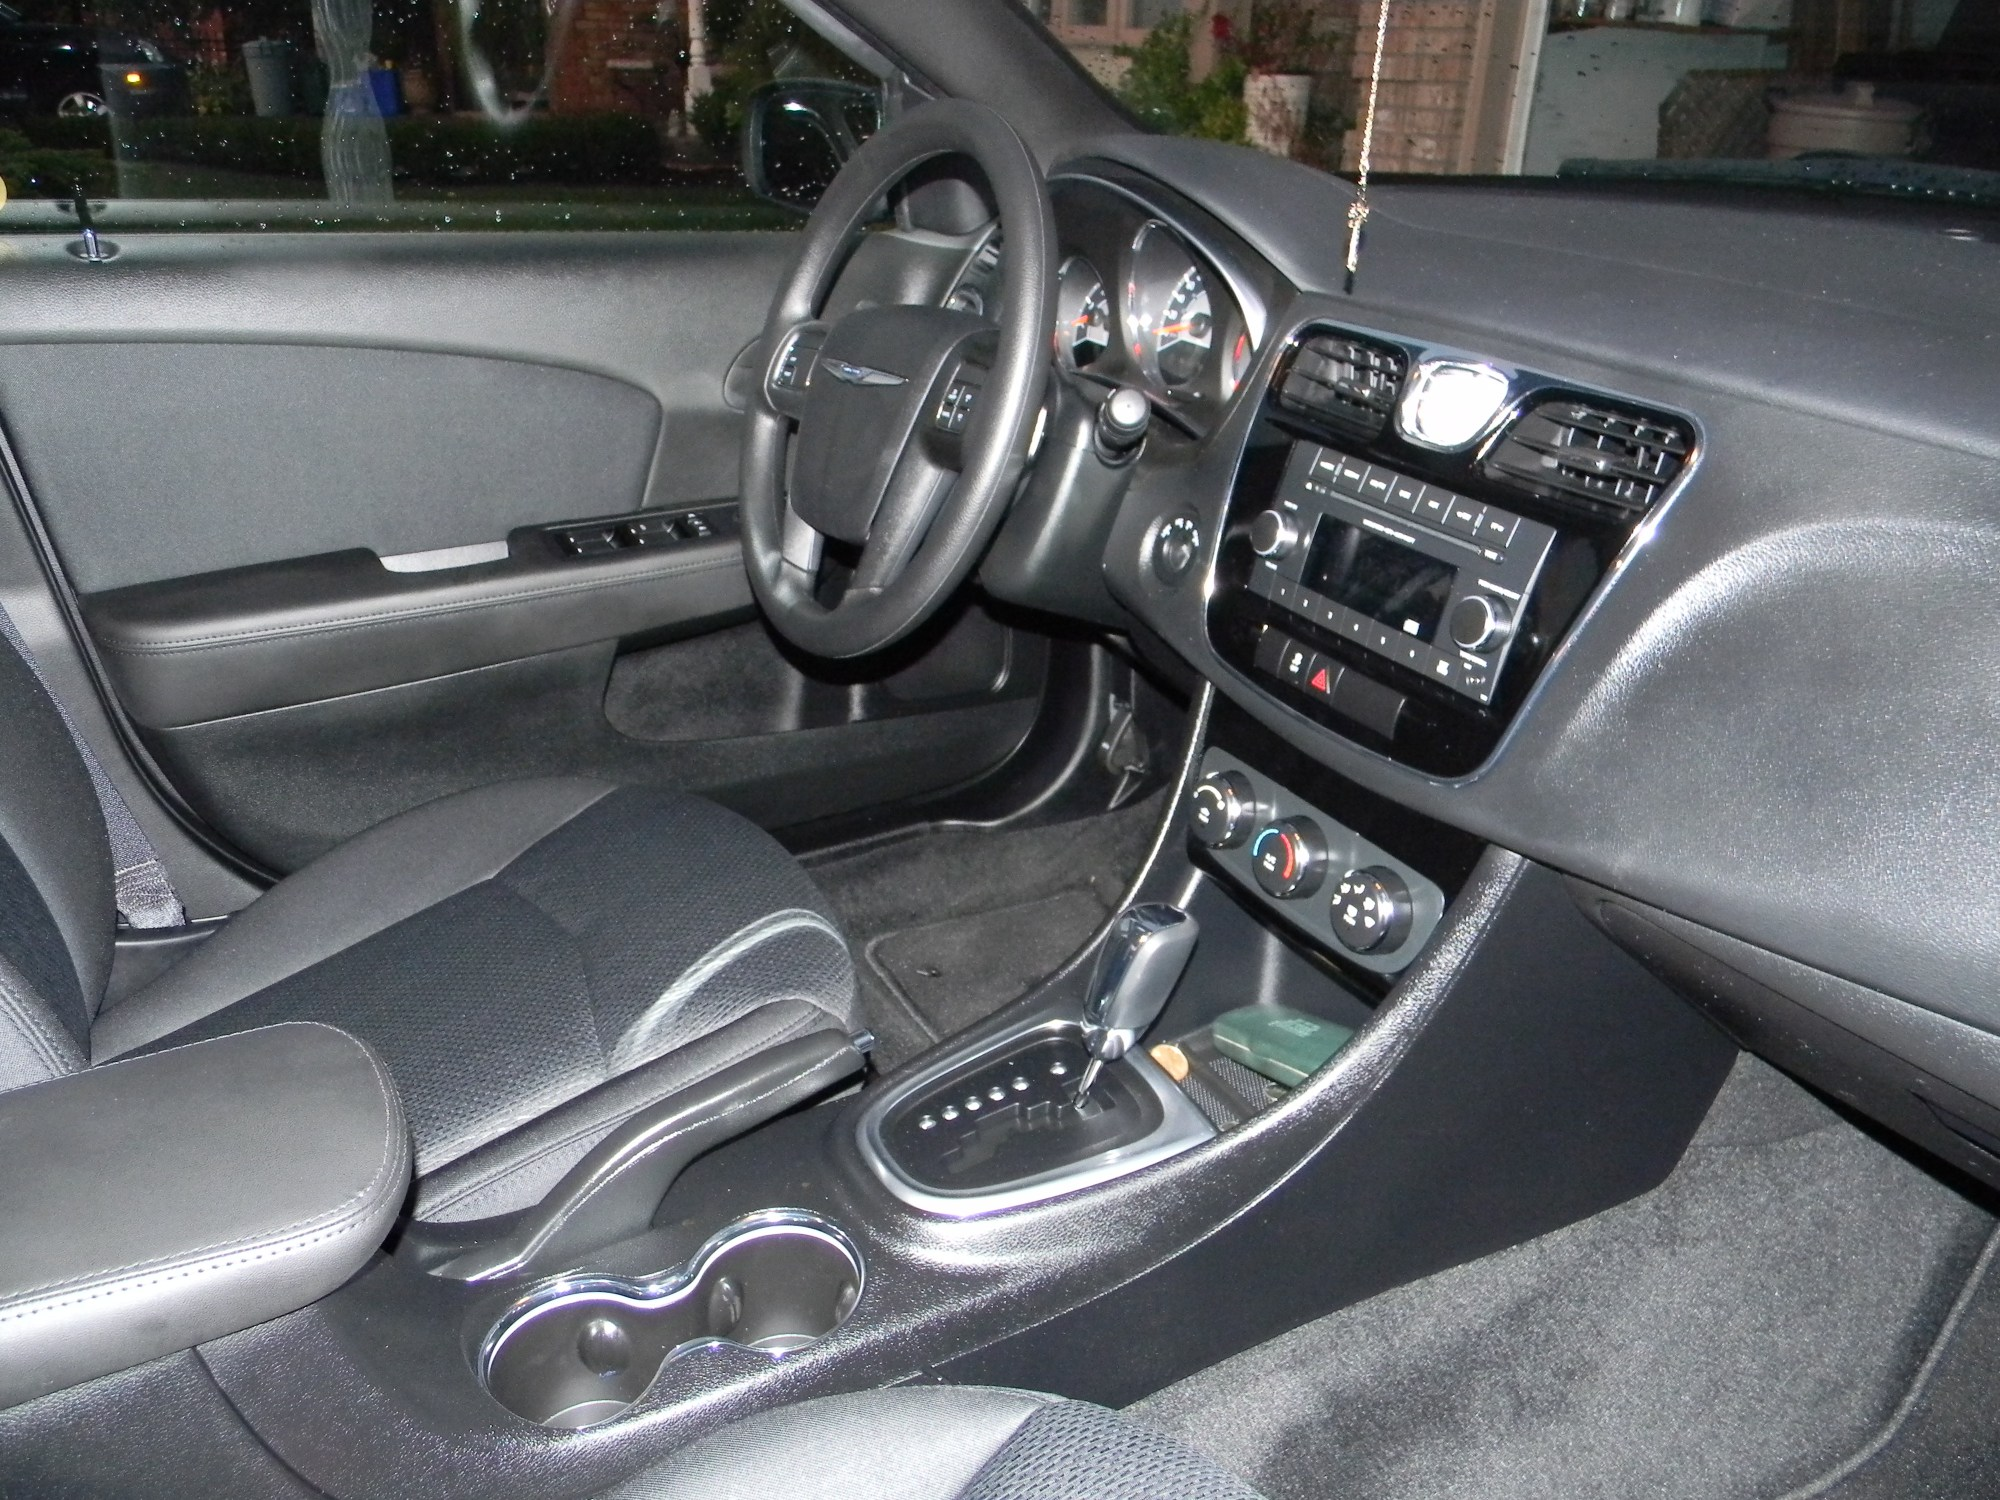 hight resolution of 2013 edit interior the 2013 chrysler 200